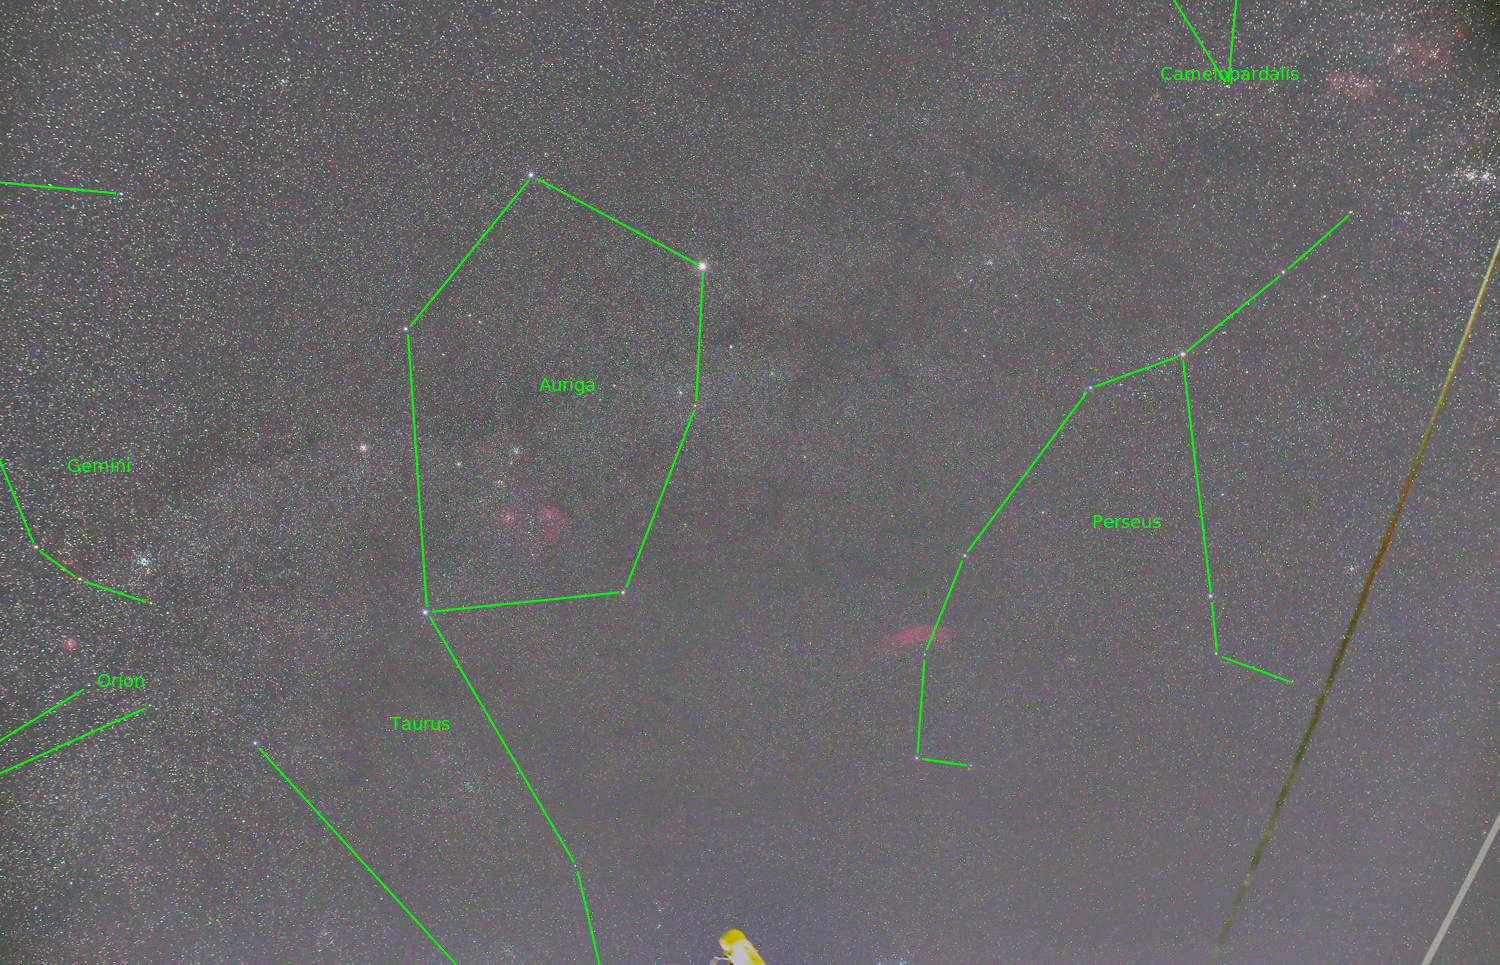 Adjacent-Auriga_2018MAR16_1500px2_annotated.jpg